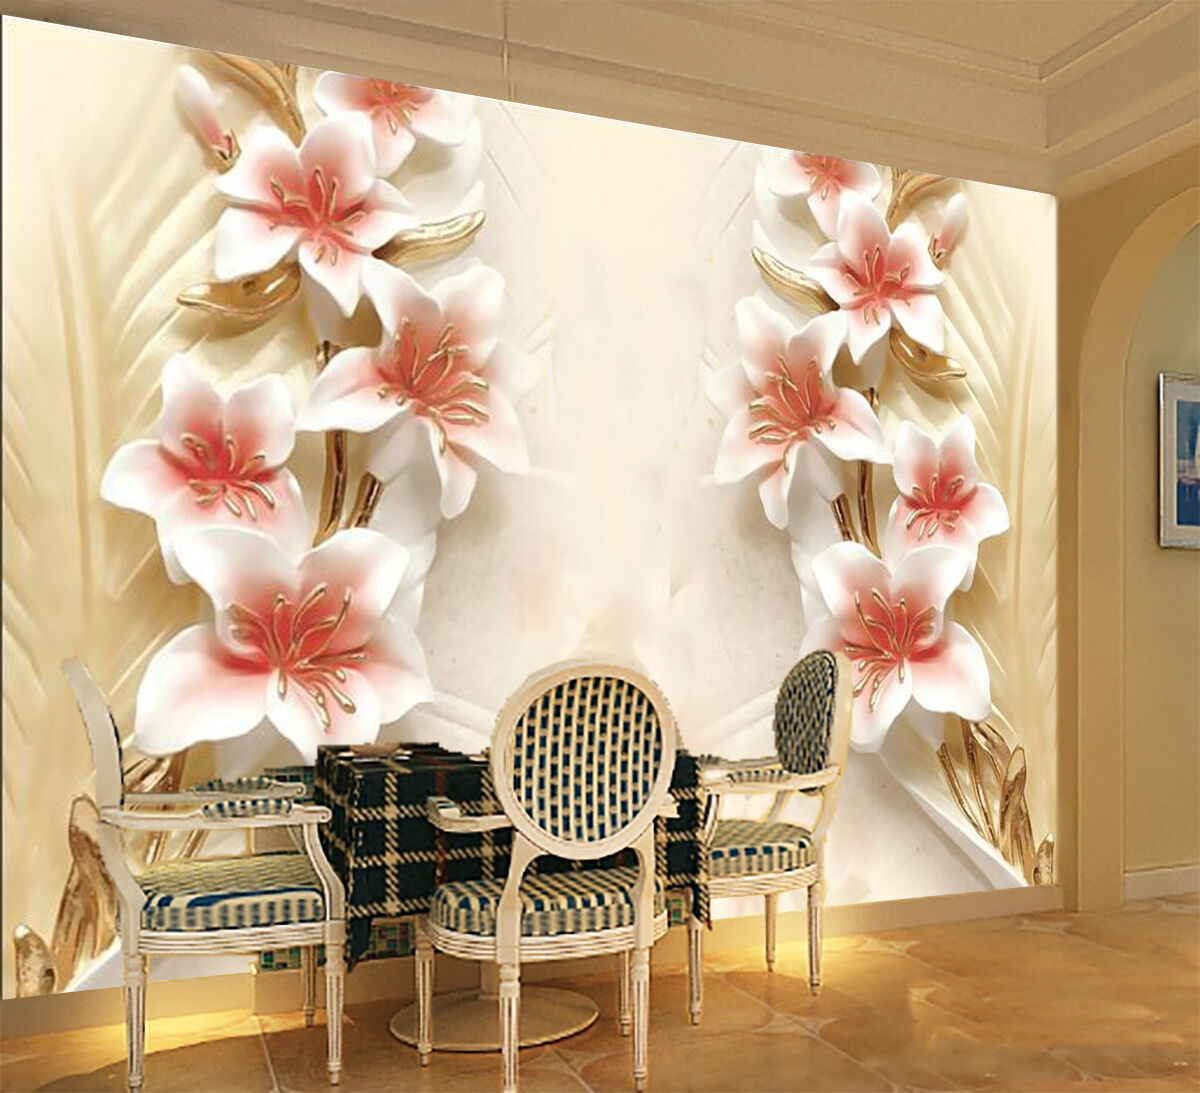 3D Flower carving bloom Wall Paper wall Print Decal Wall Deco Indoor wall Mural